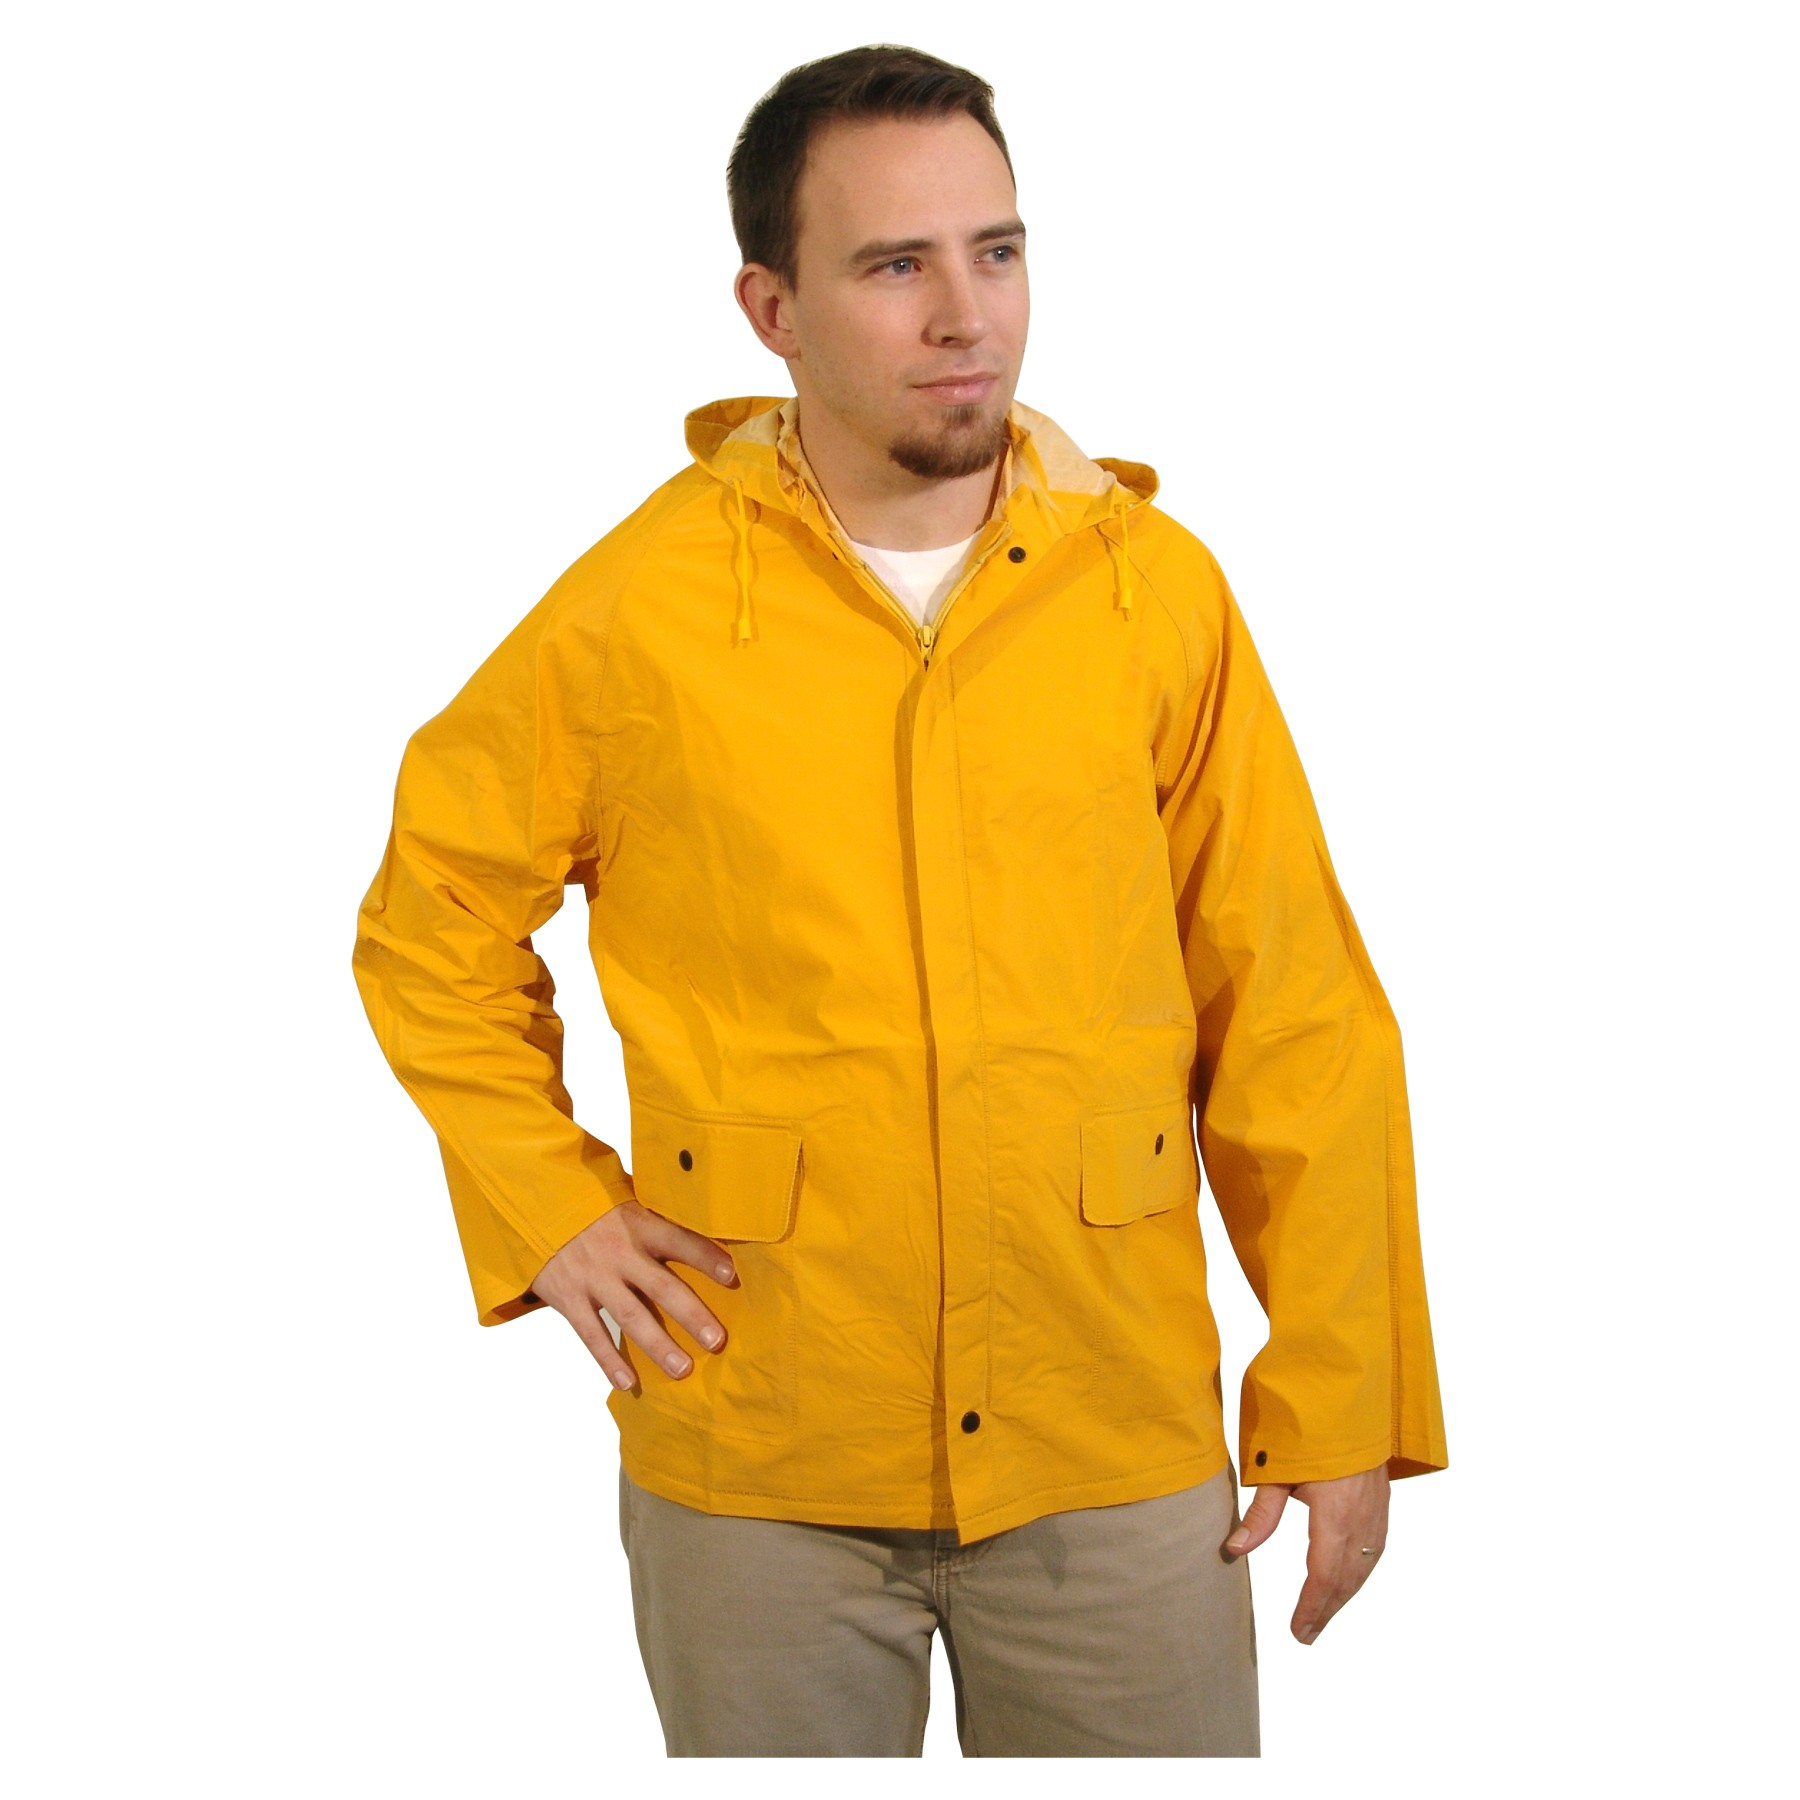 Rain jacket buying tips